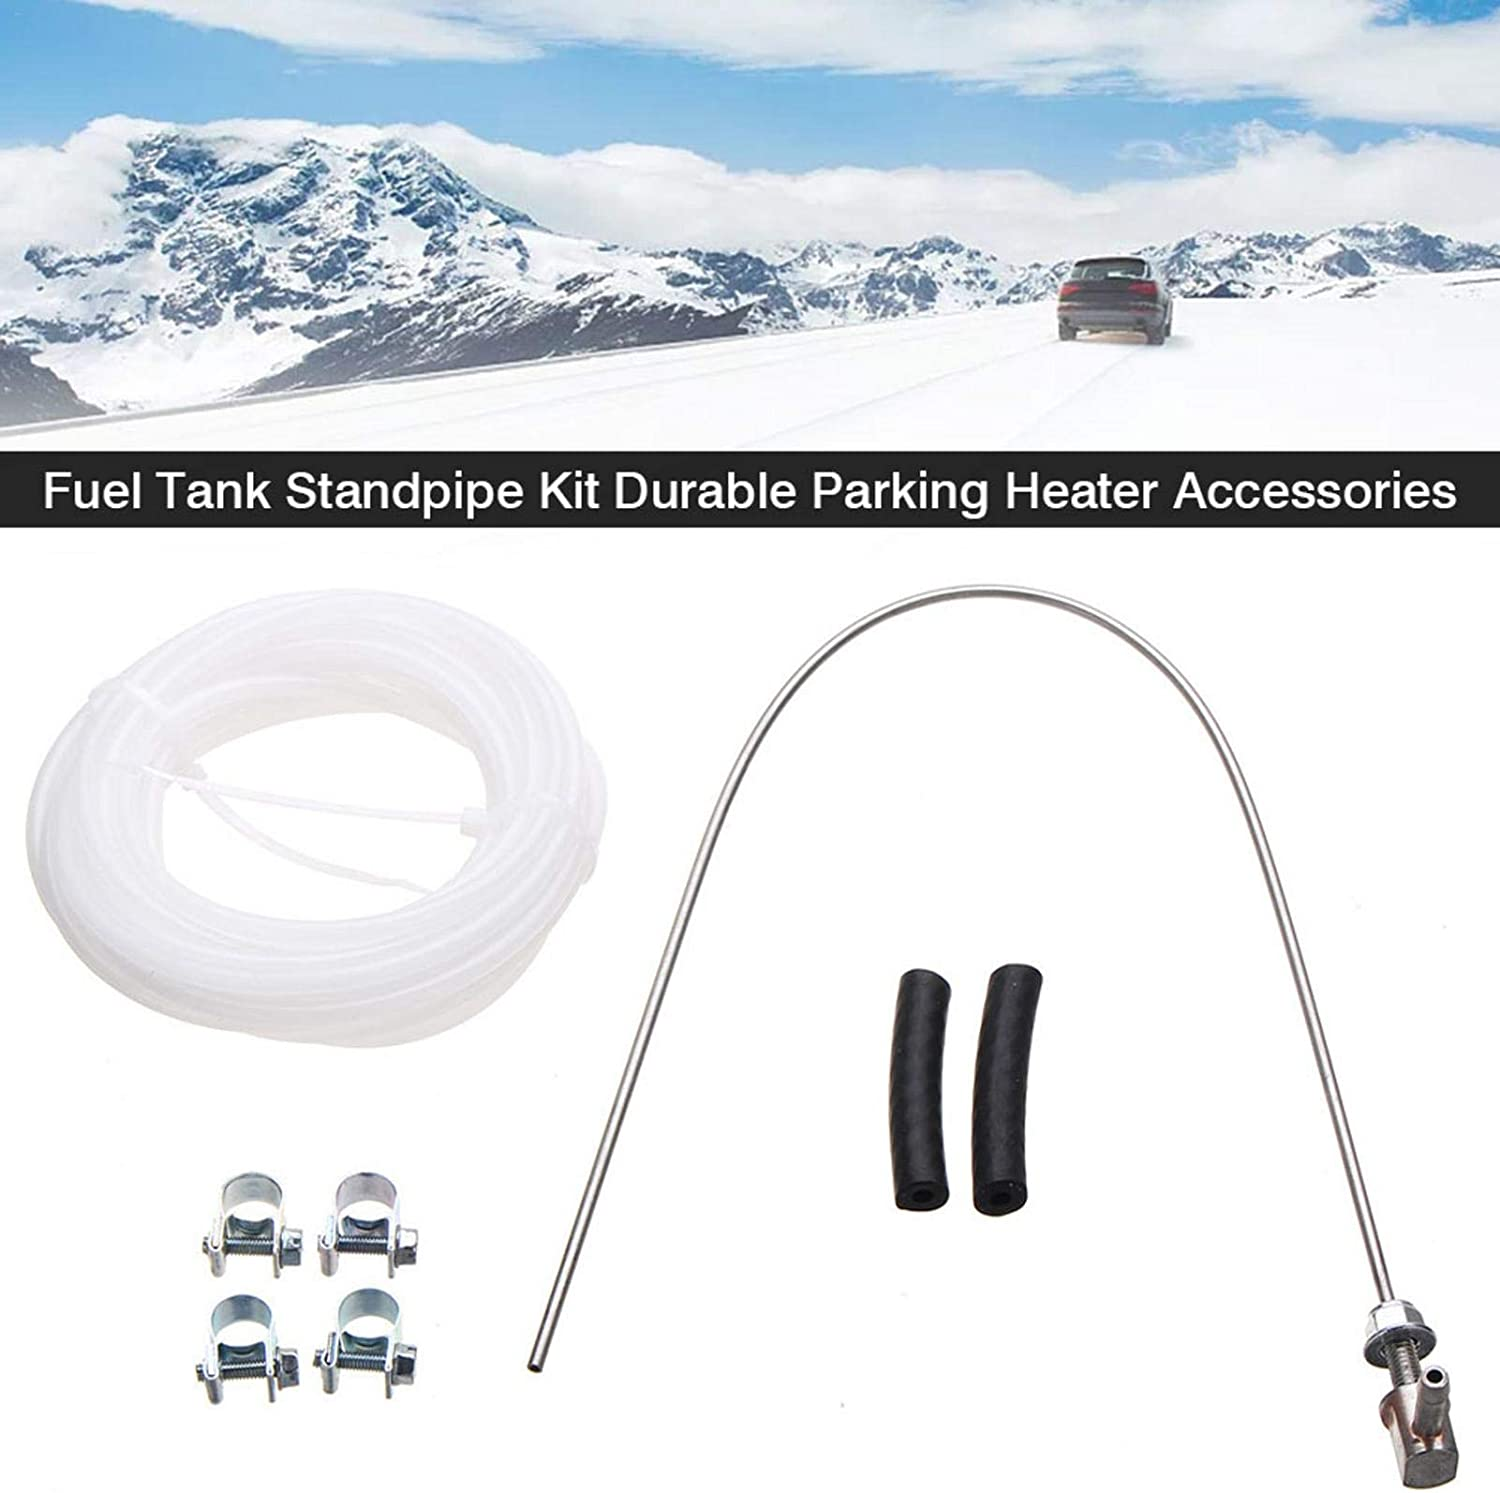 MiuMily Fuel Tank Standpipe Kit Fuel Tank Sender Stand Pipe Pick Up Fuel Pipe Pipe Clamps Fit Compatible for Parking Heater Webasto Eberspacher Heater